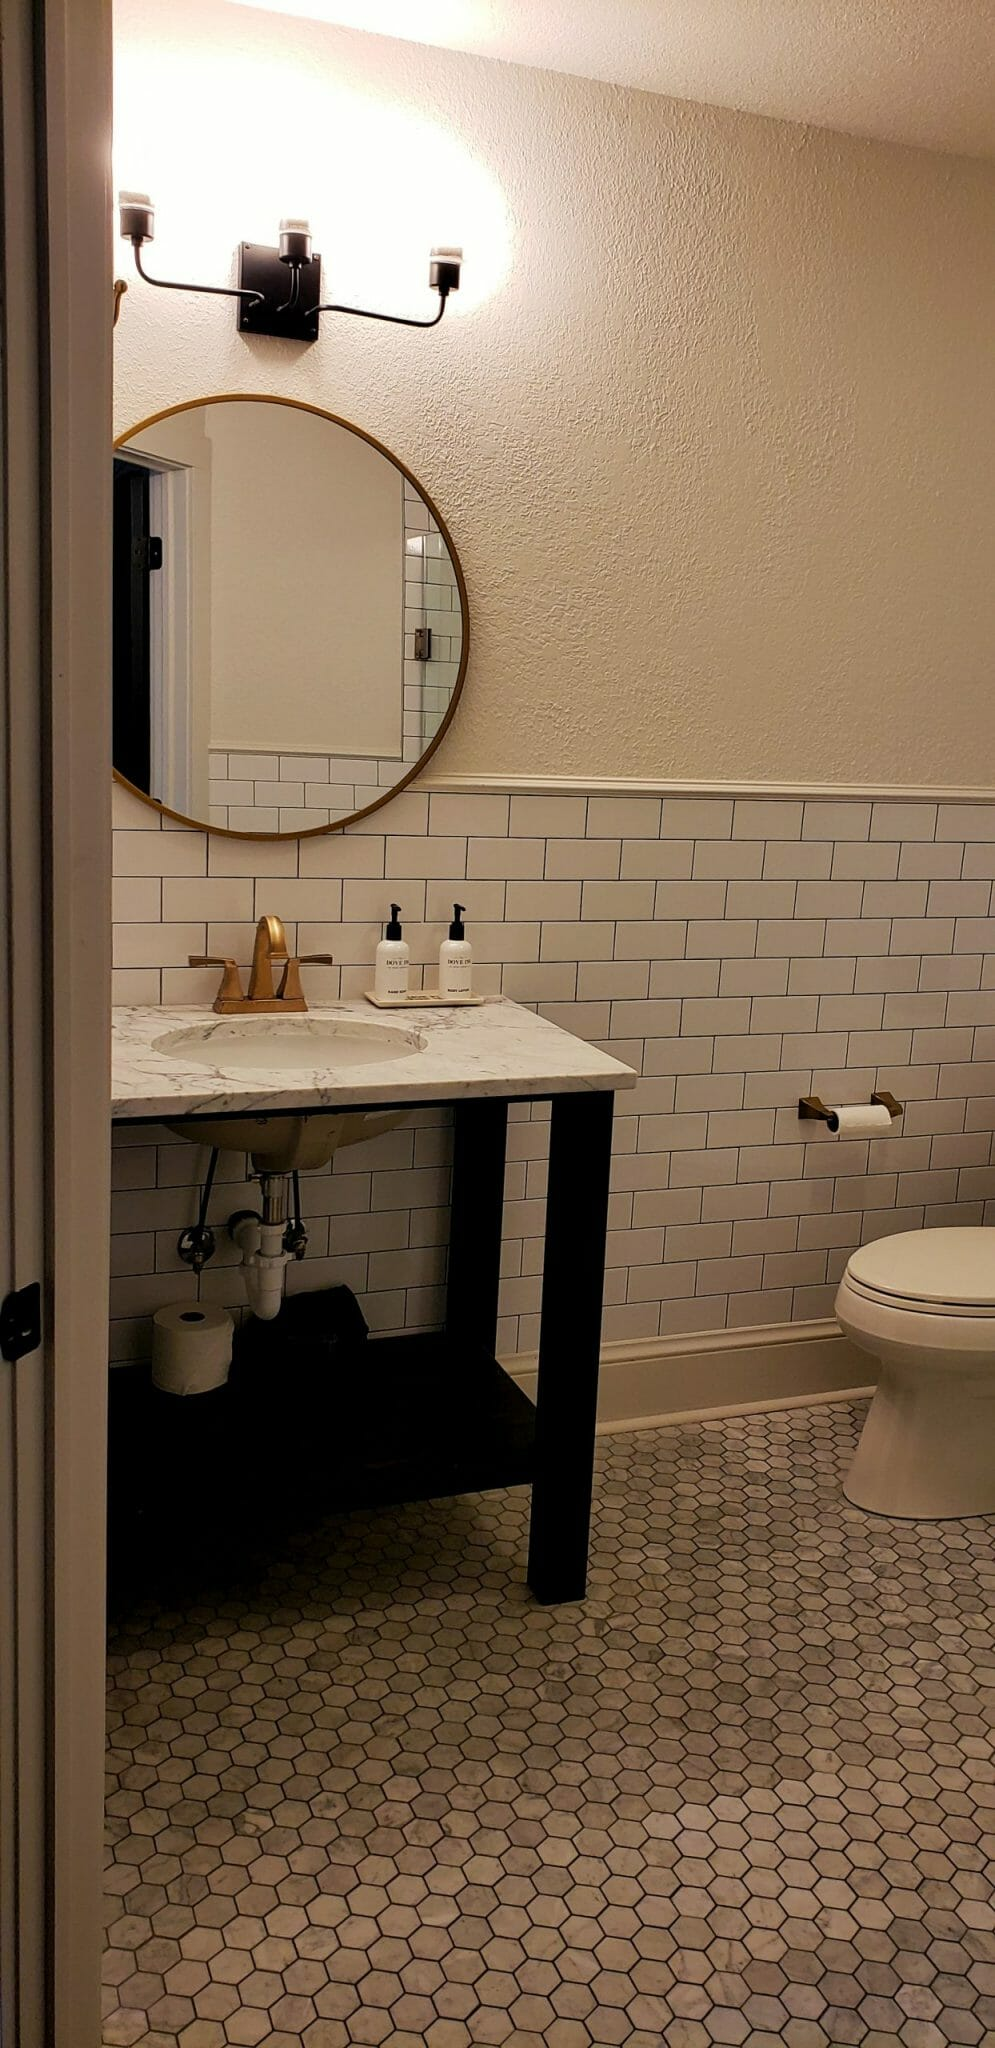 Bathroom with round mirror, marble countertop and white subway tiles